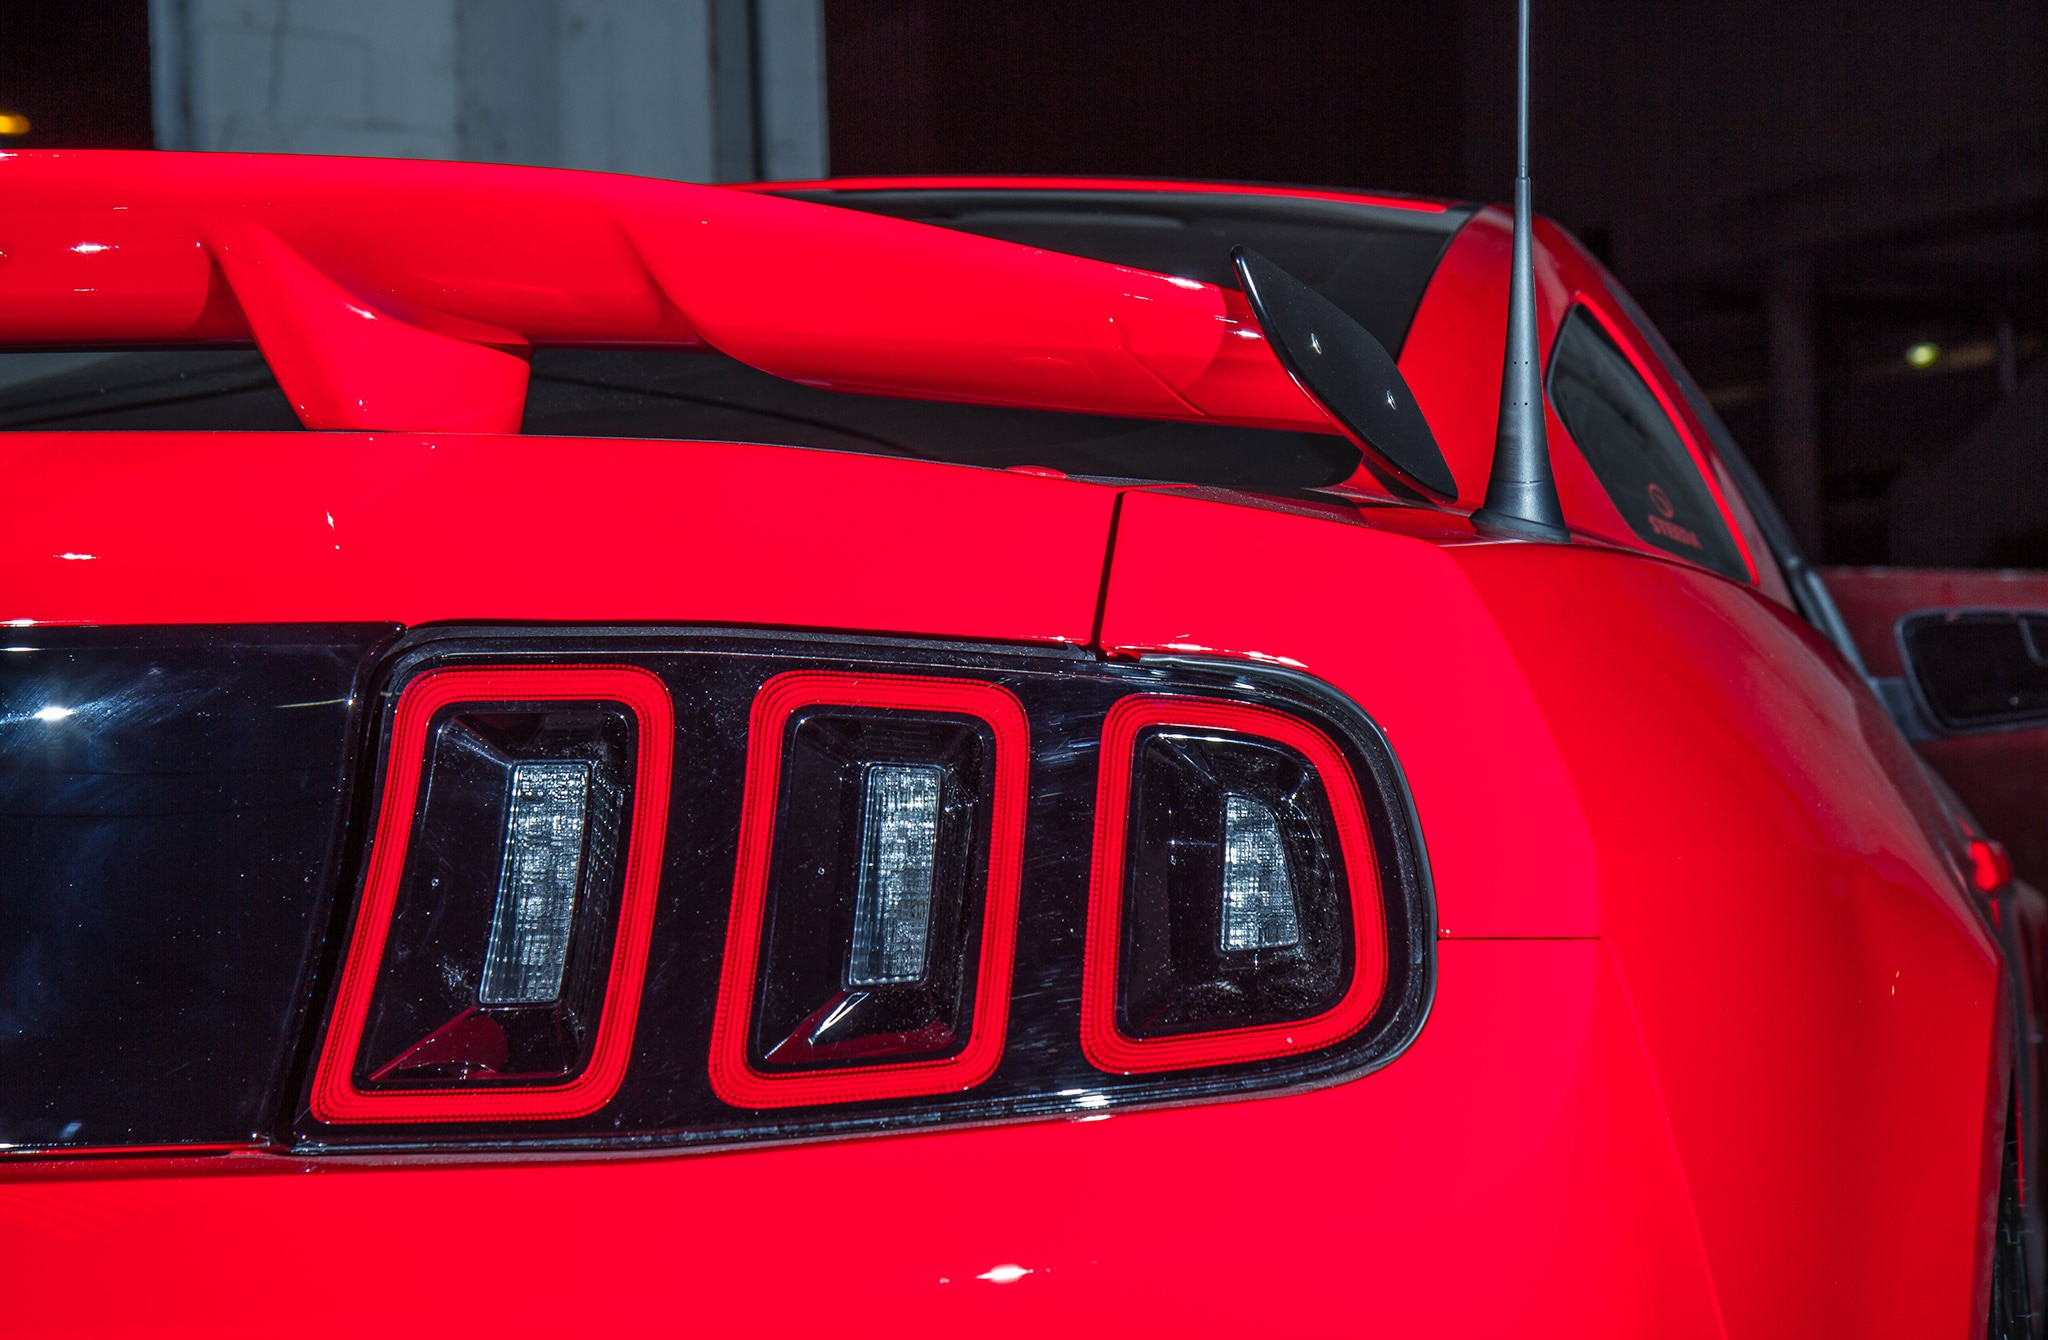 2014 Ford Mustang Steeda Red Q650 Rear Taillight